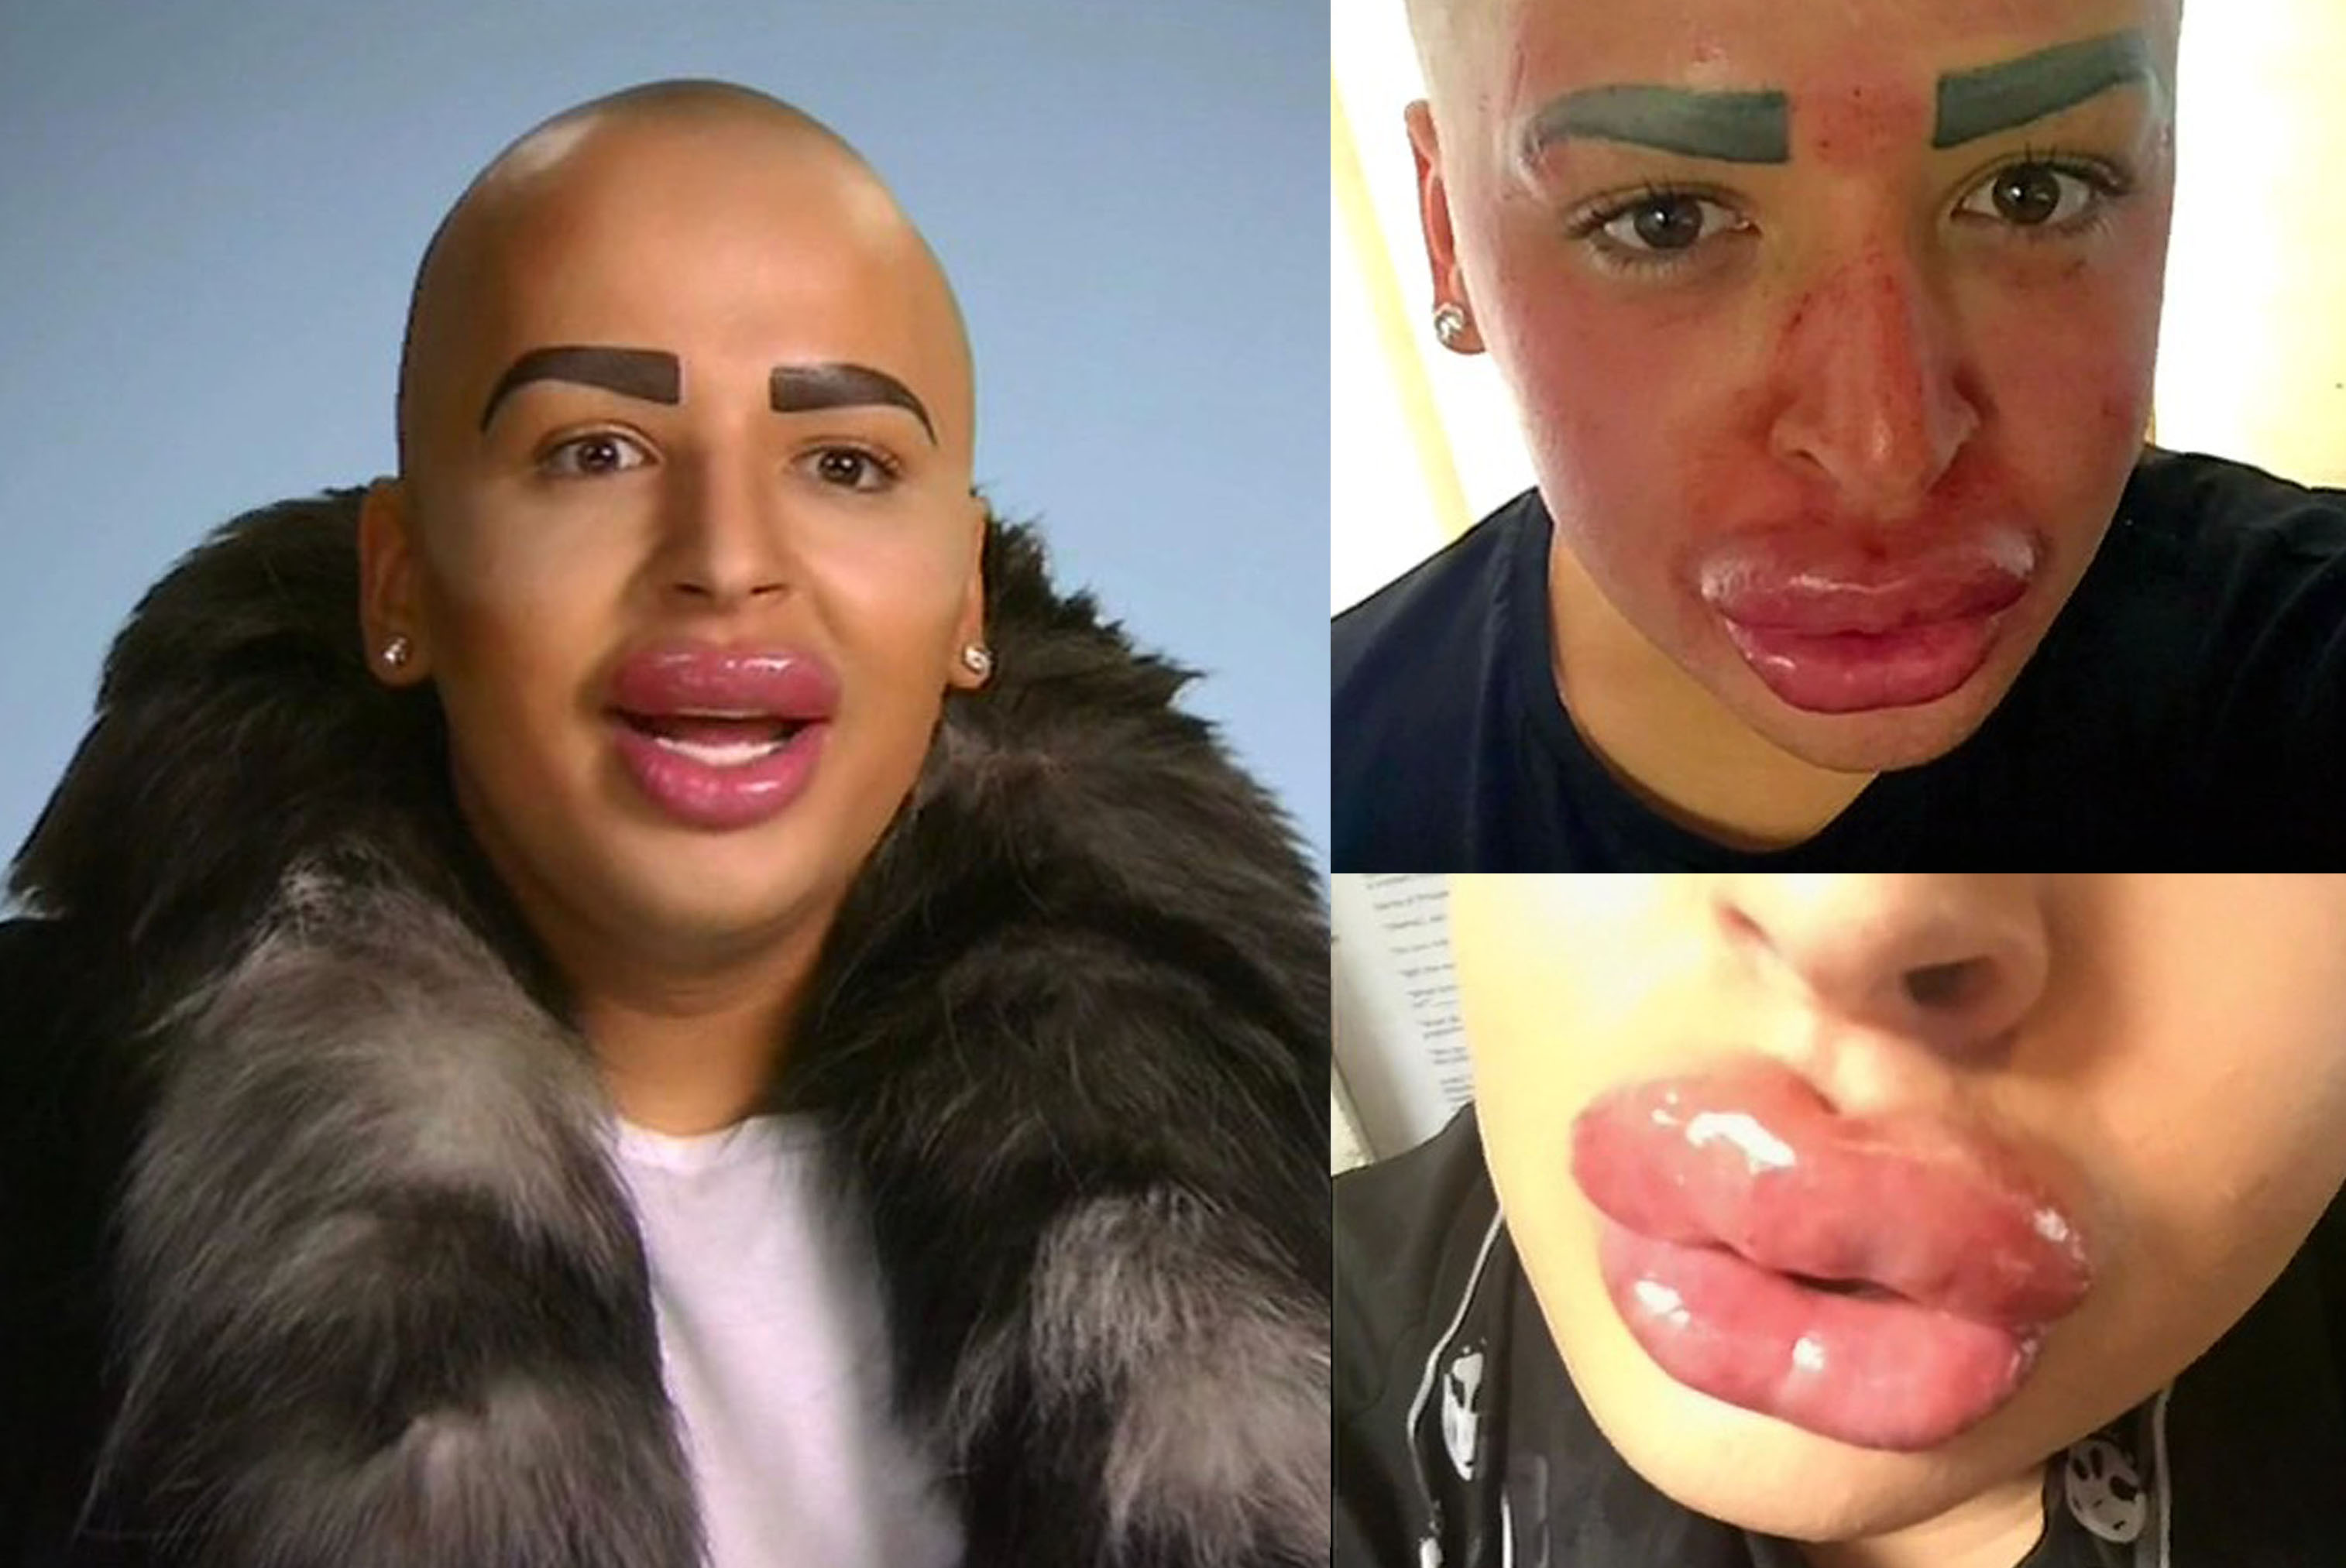 Kim Kardashian superfan who spent £100,000 on surgery has leaking lips and can no longer move his face